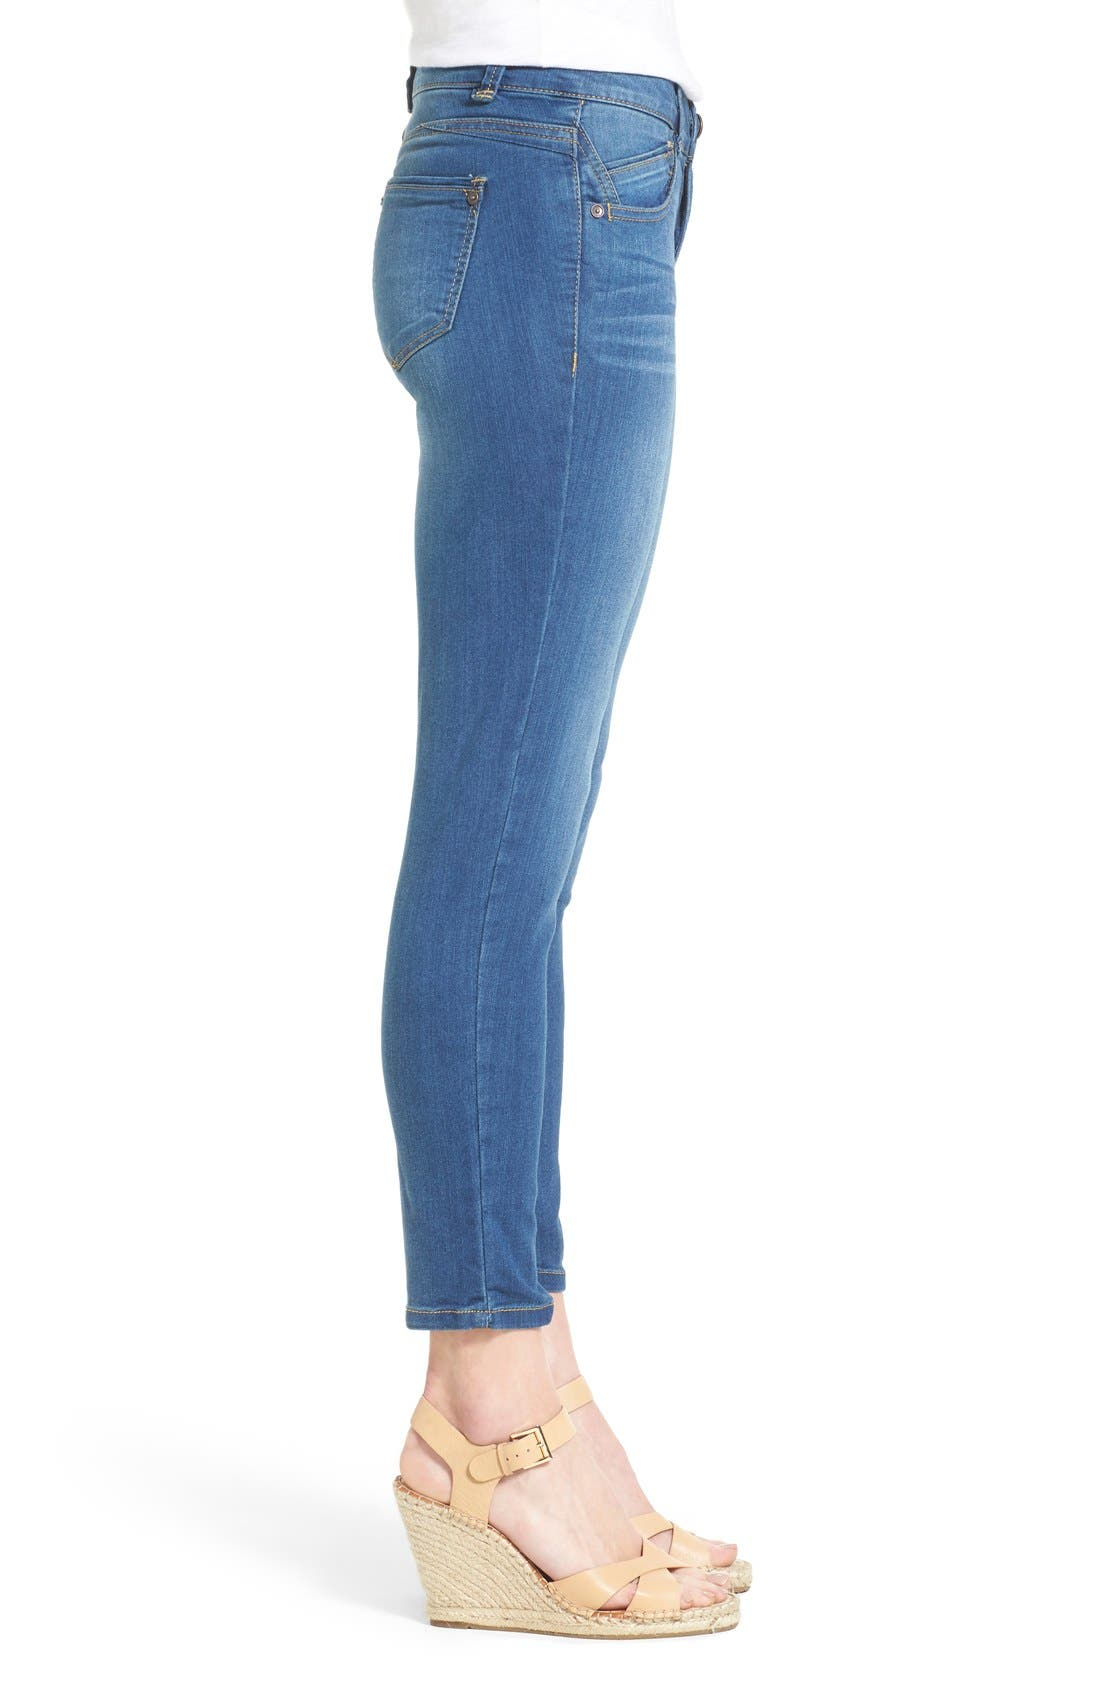 'Ab-solution' Stretch Ankle Skinny Jeans,                             Alternate thumbnail 3, color,                             421